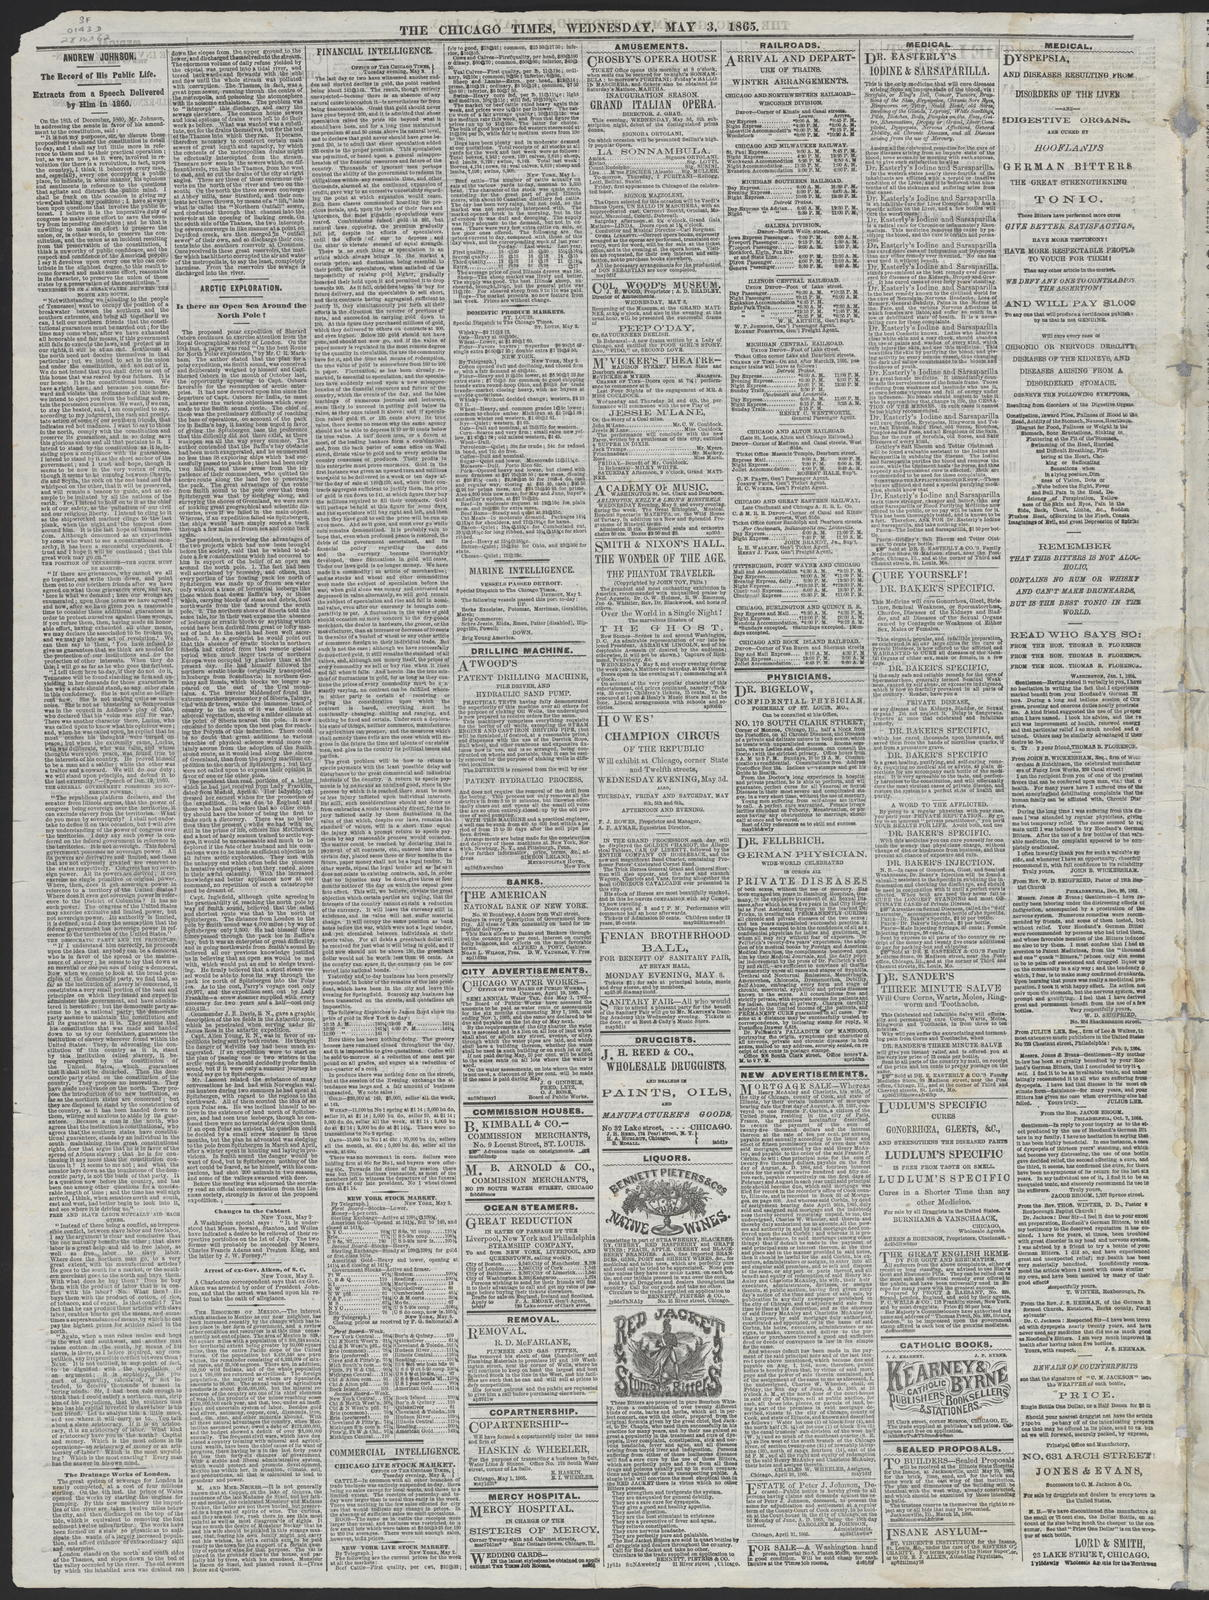 The Chicago Times, [newspaper]. May 3, 1865.